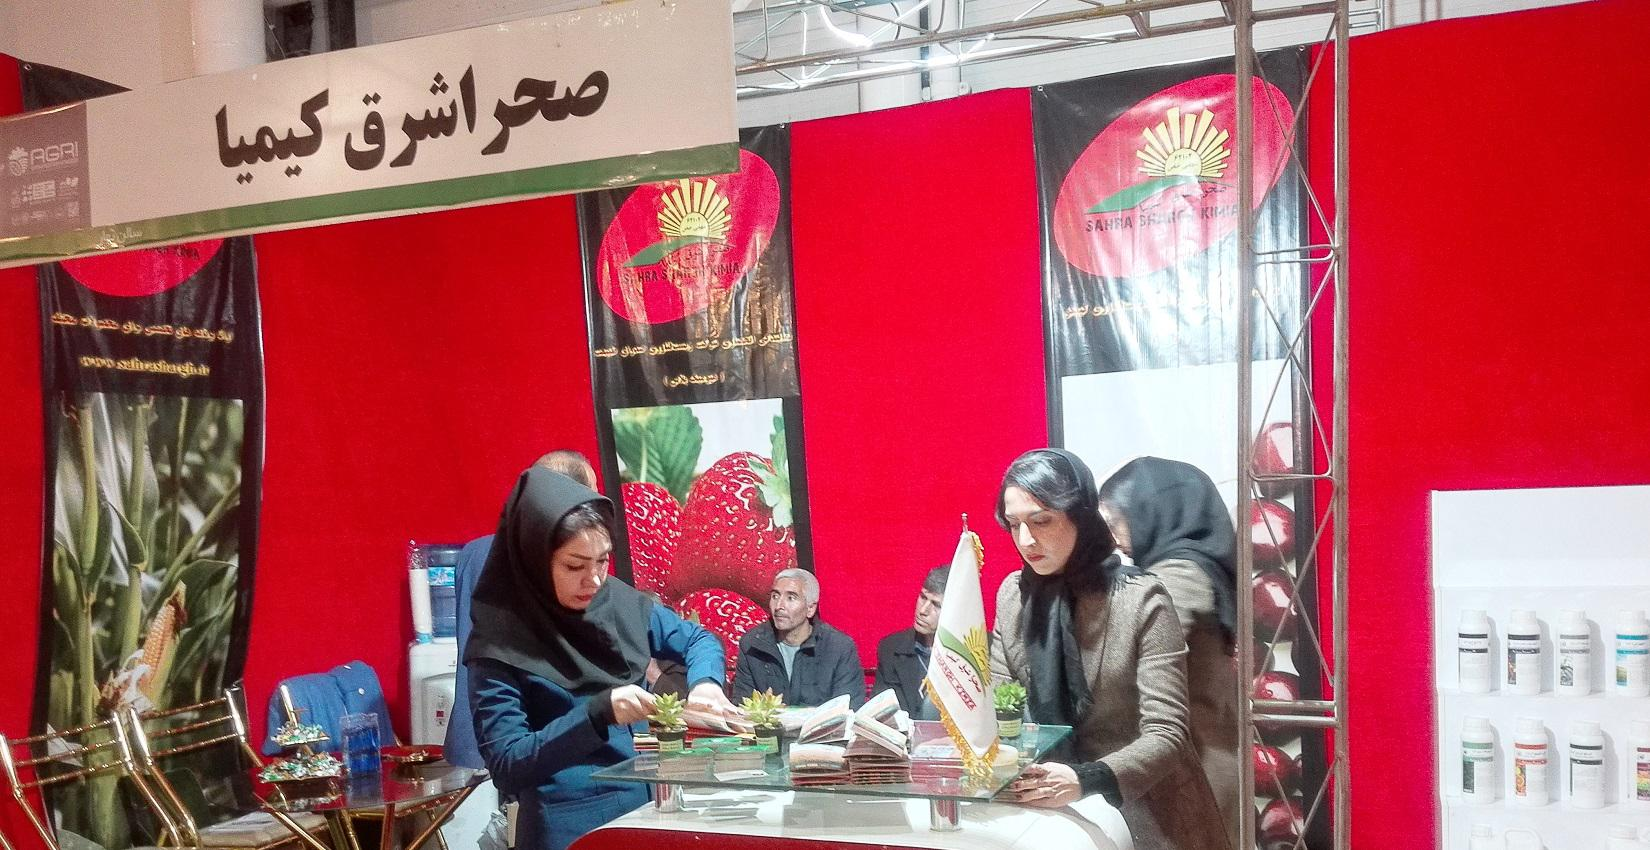 The 15th international exhibition of agriculture in Mashhad